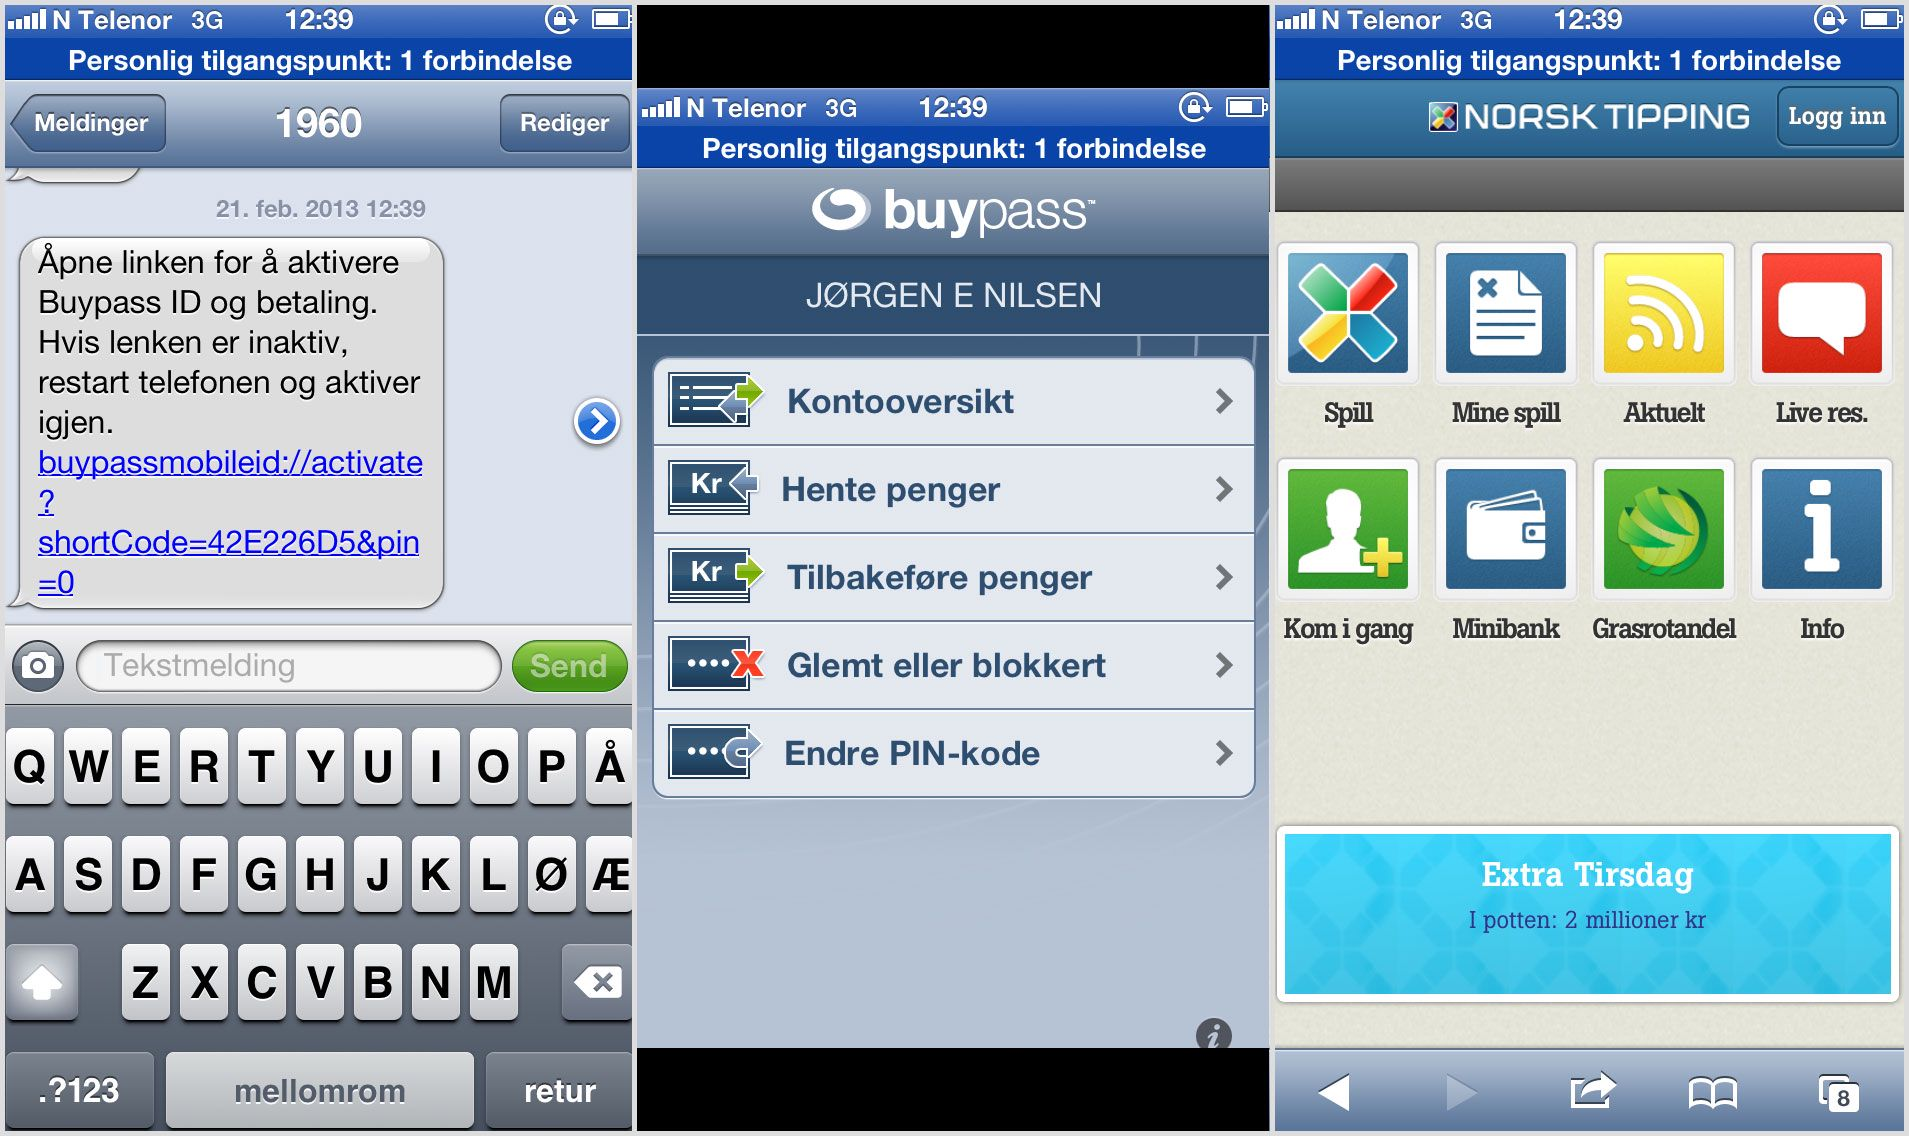 Buypass kortleser norsk tipping